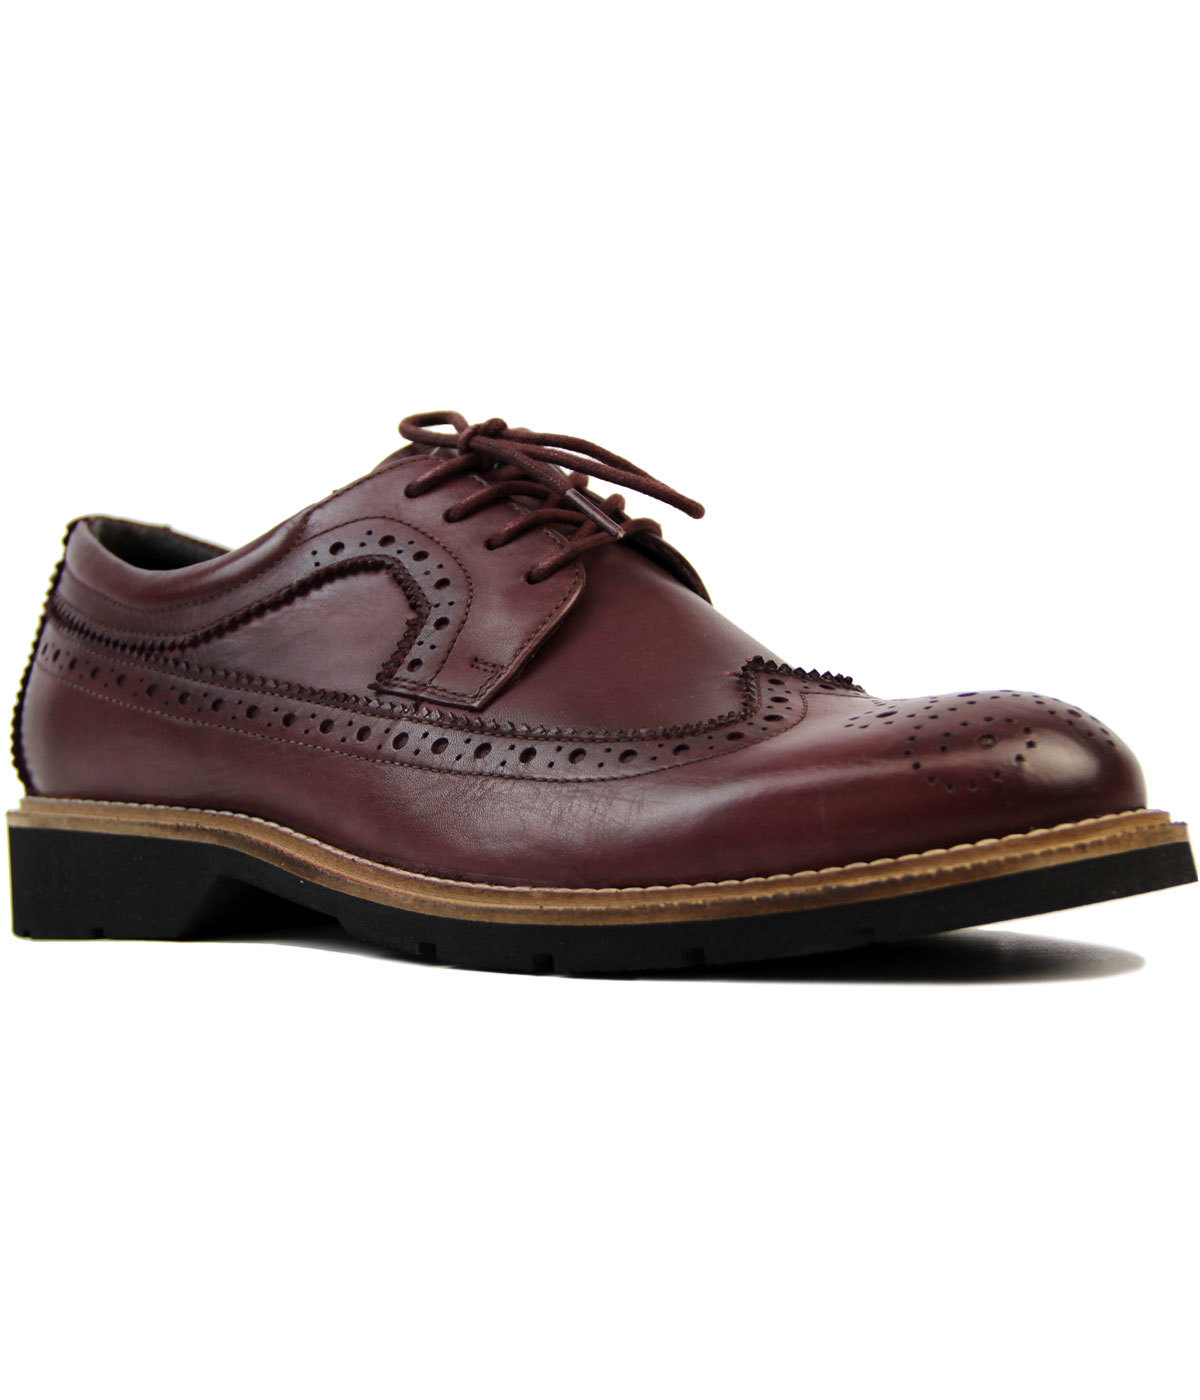 Harvard Retro Mod Wing Cap Brogue Gibson Shoes (O)